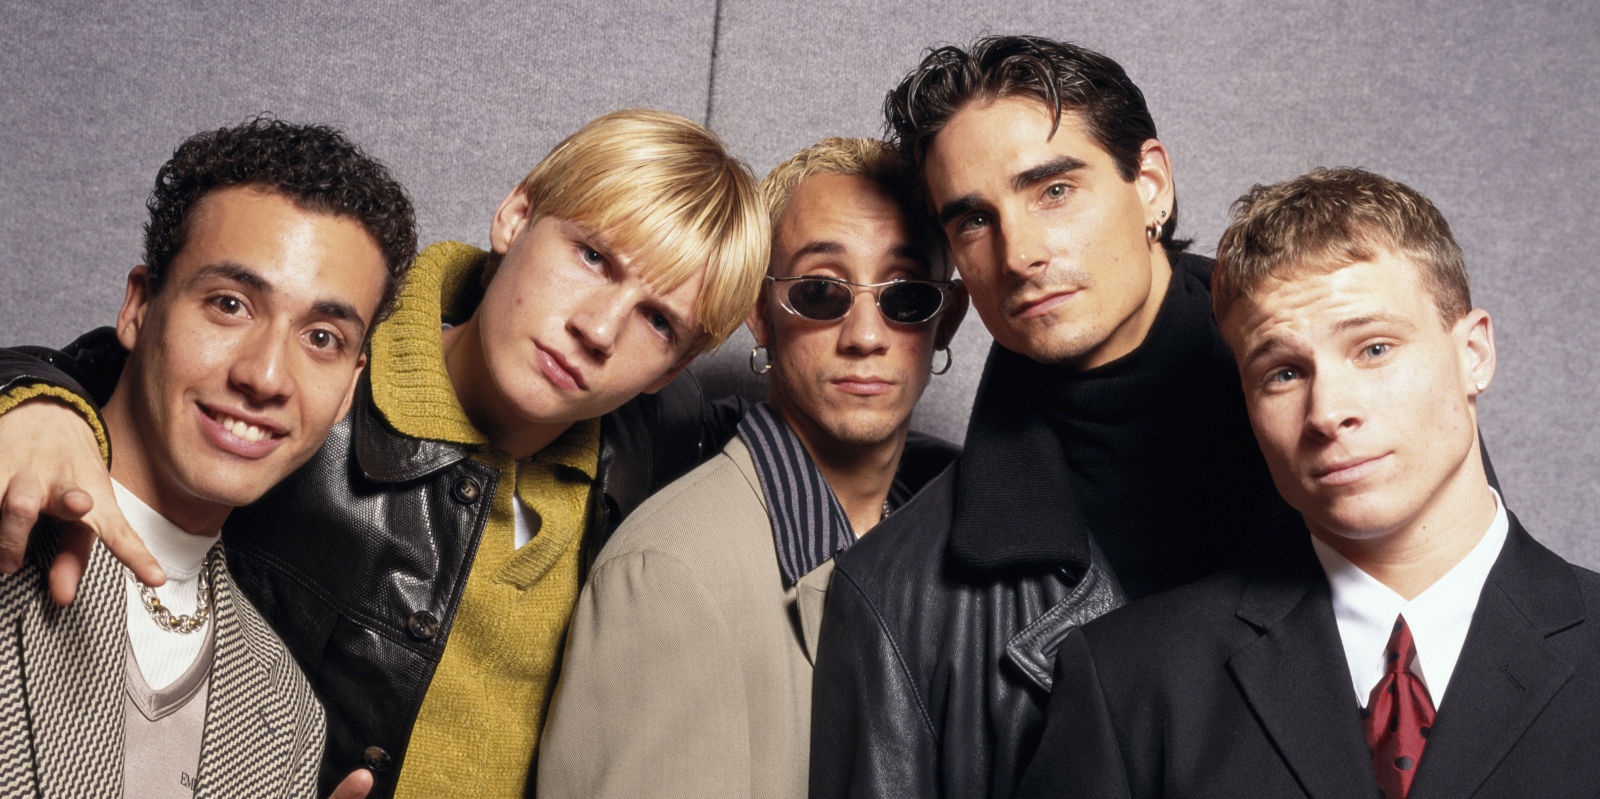 Did Tony Ferguson Infiltrate The Backstreet Boys In The 90s